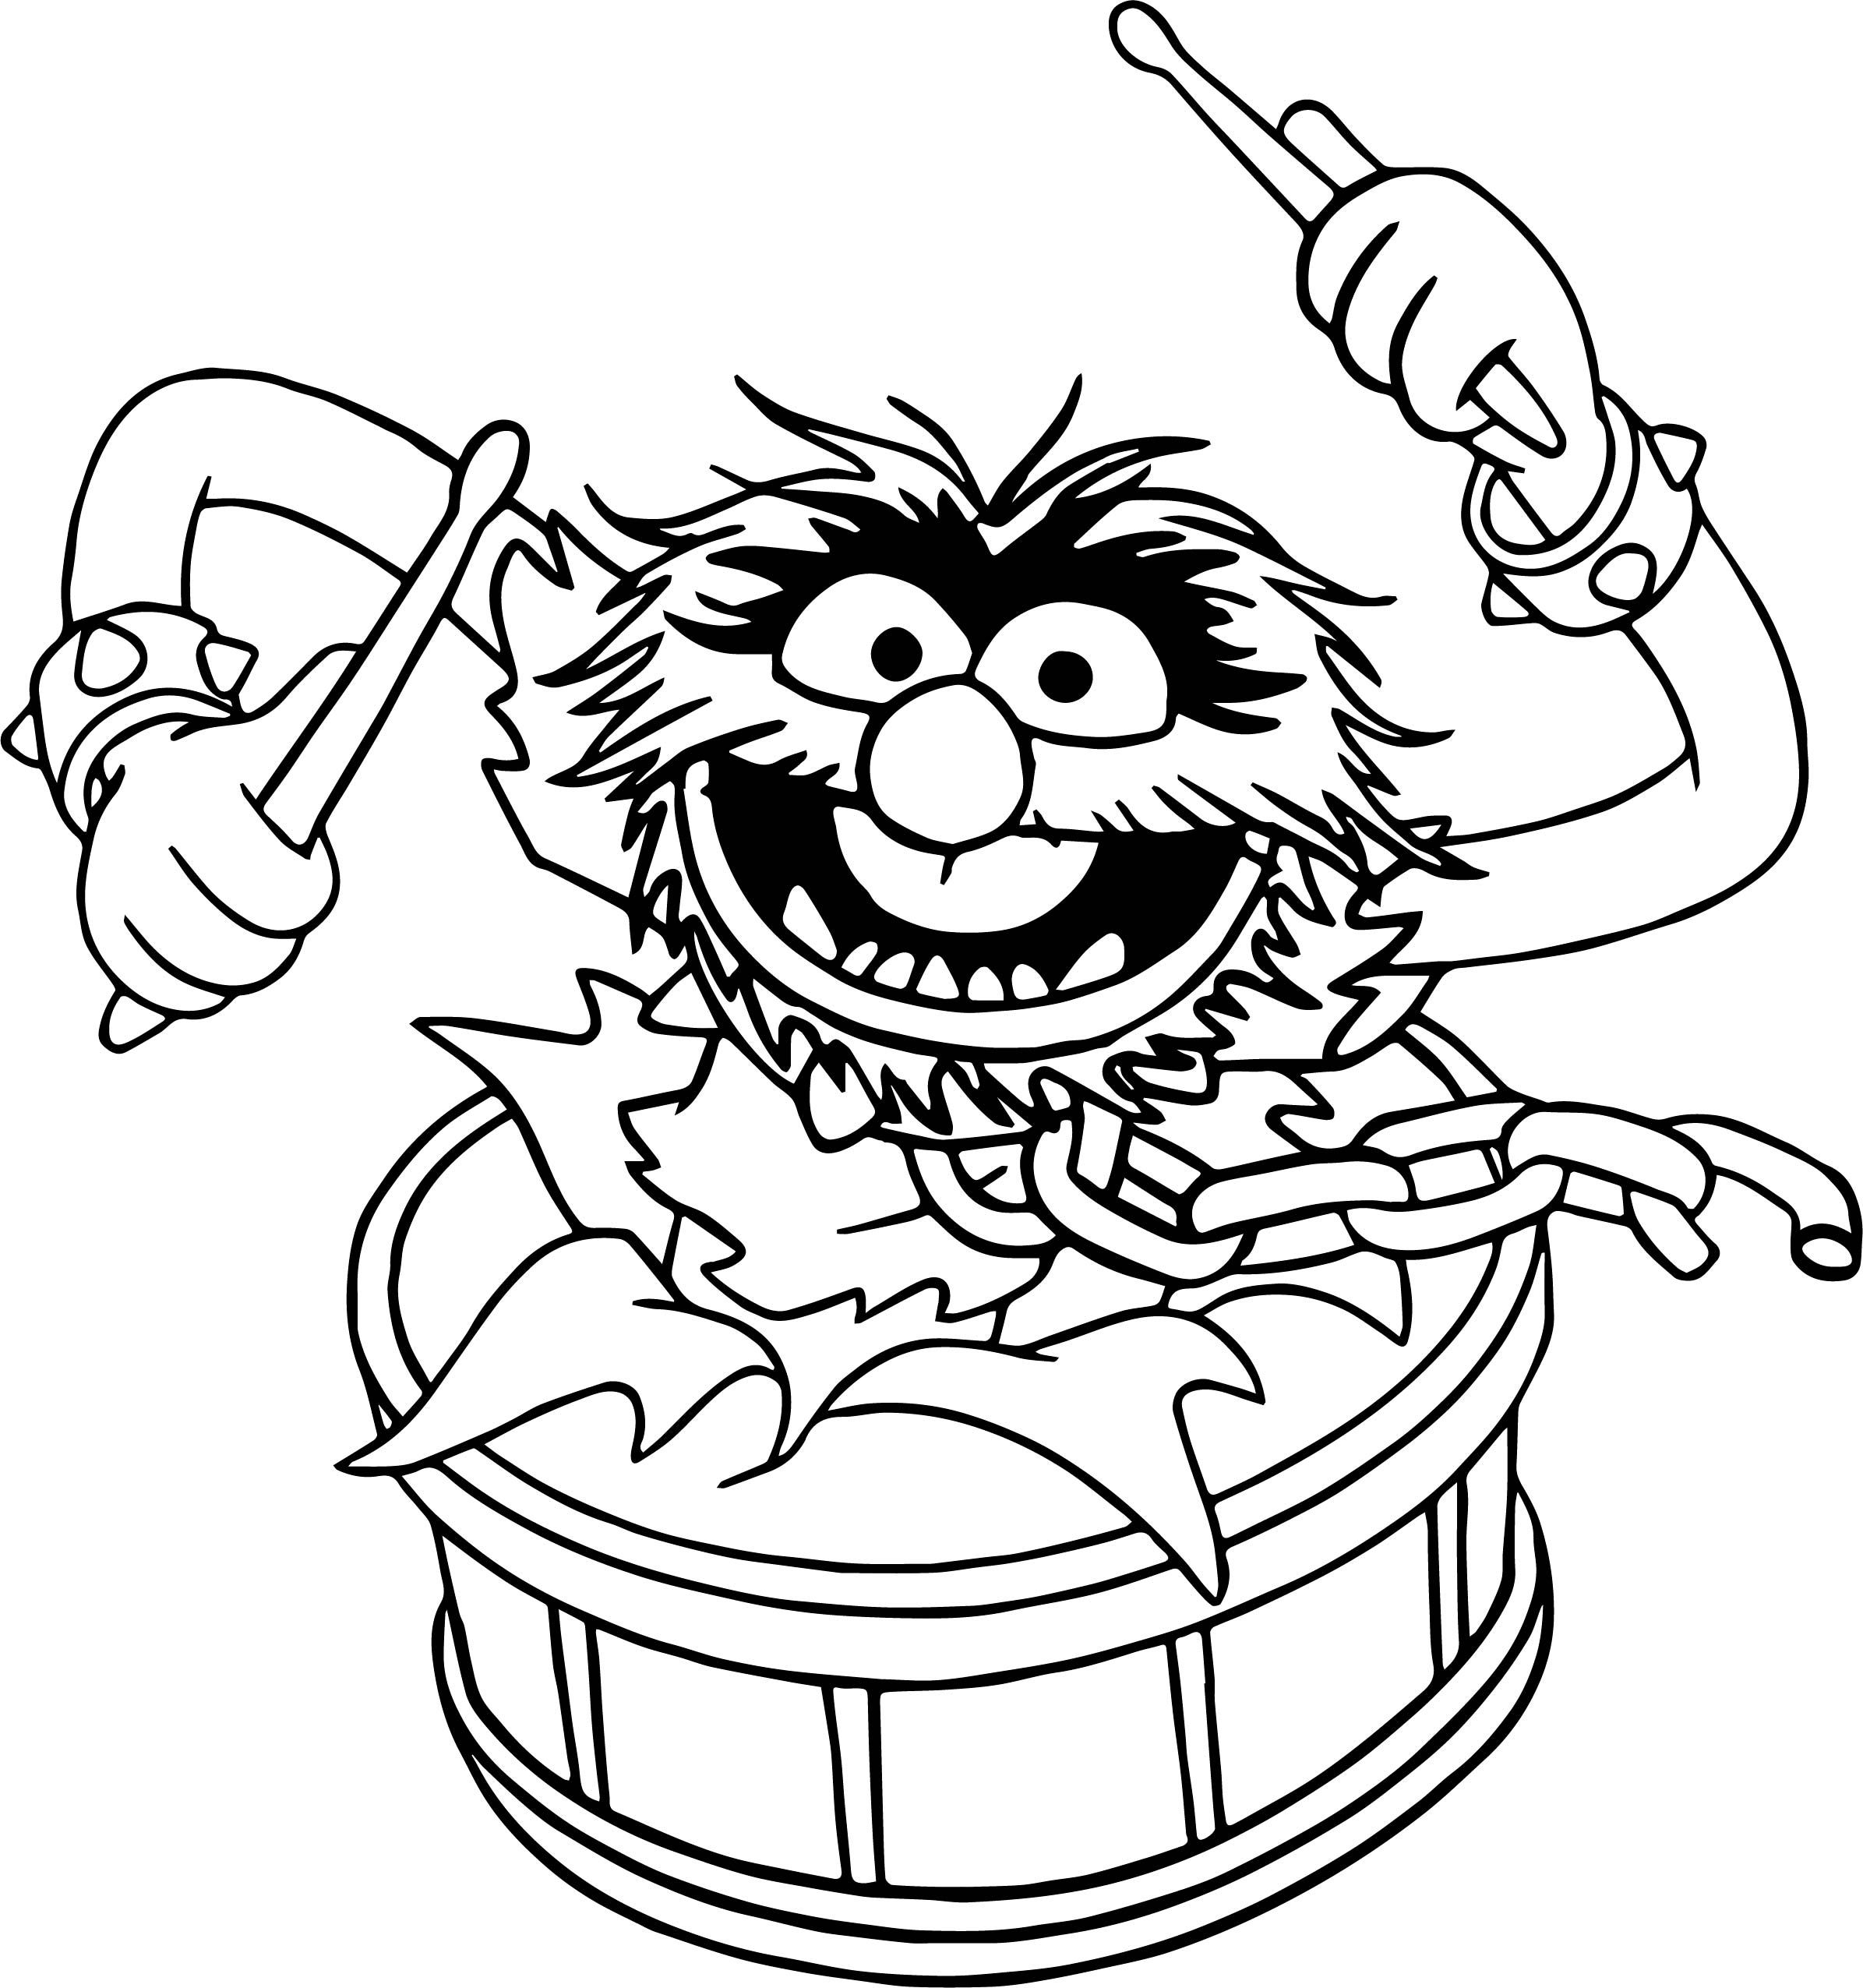 Muppets Animal Free Printable: The Muppets Animal Song Coloring Pages